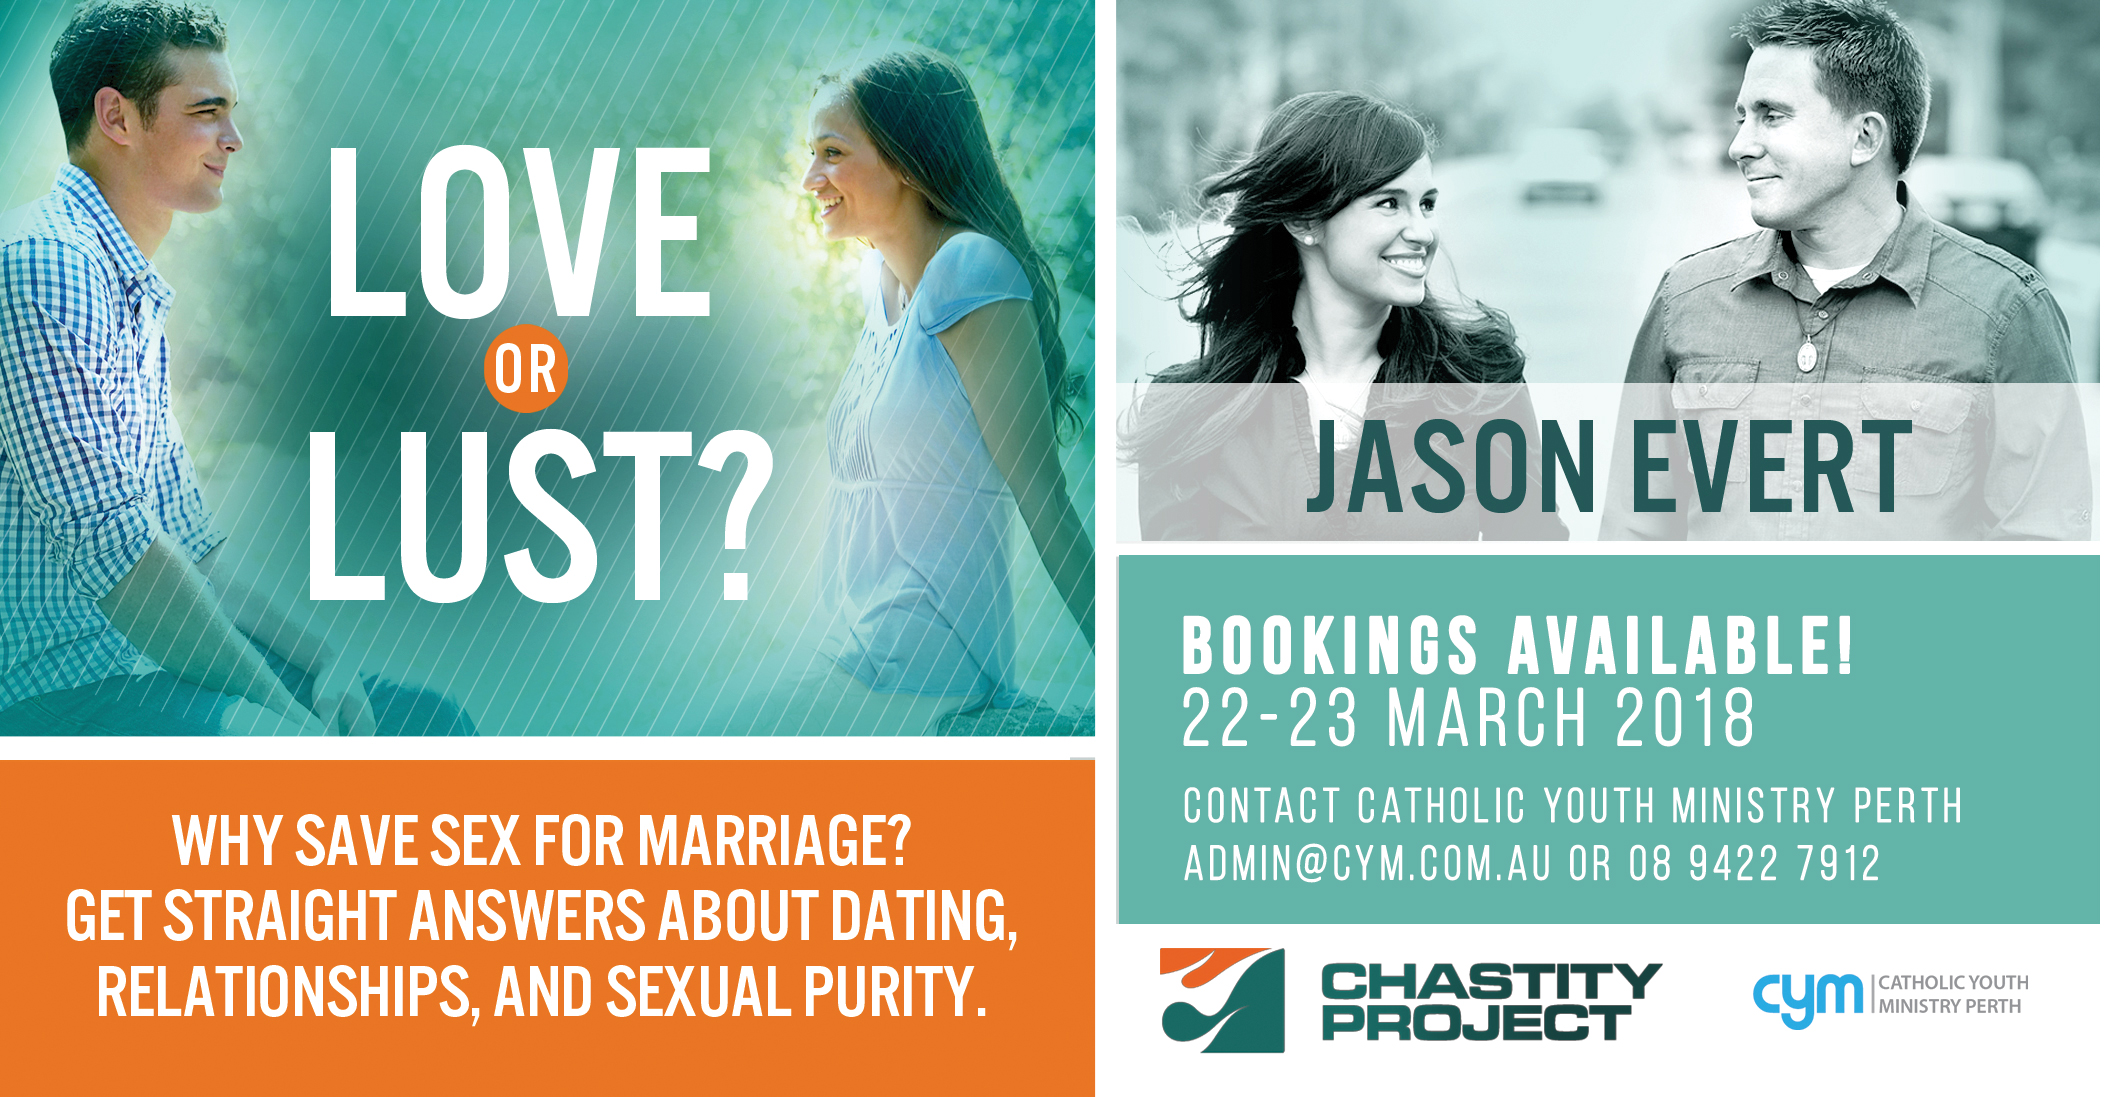 Love or Lust featuring Jason Evert from USA